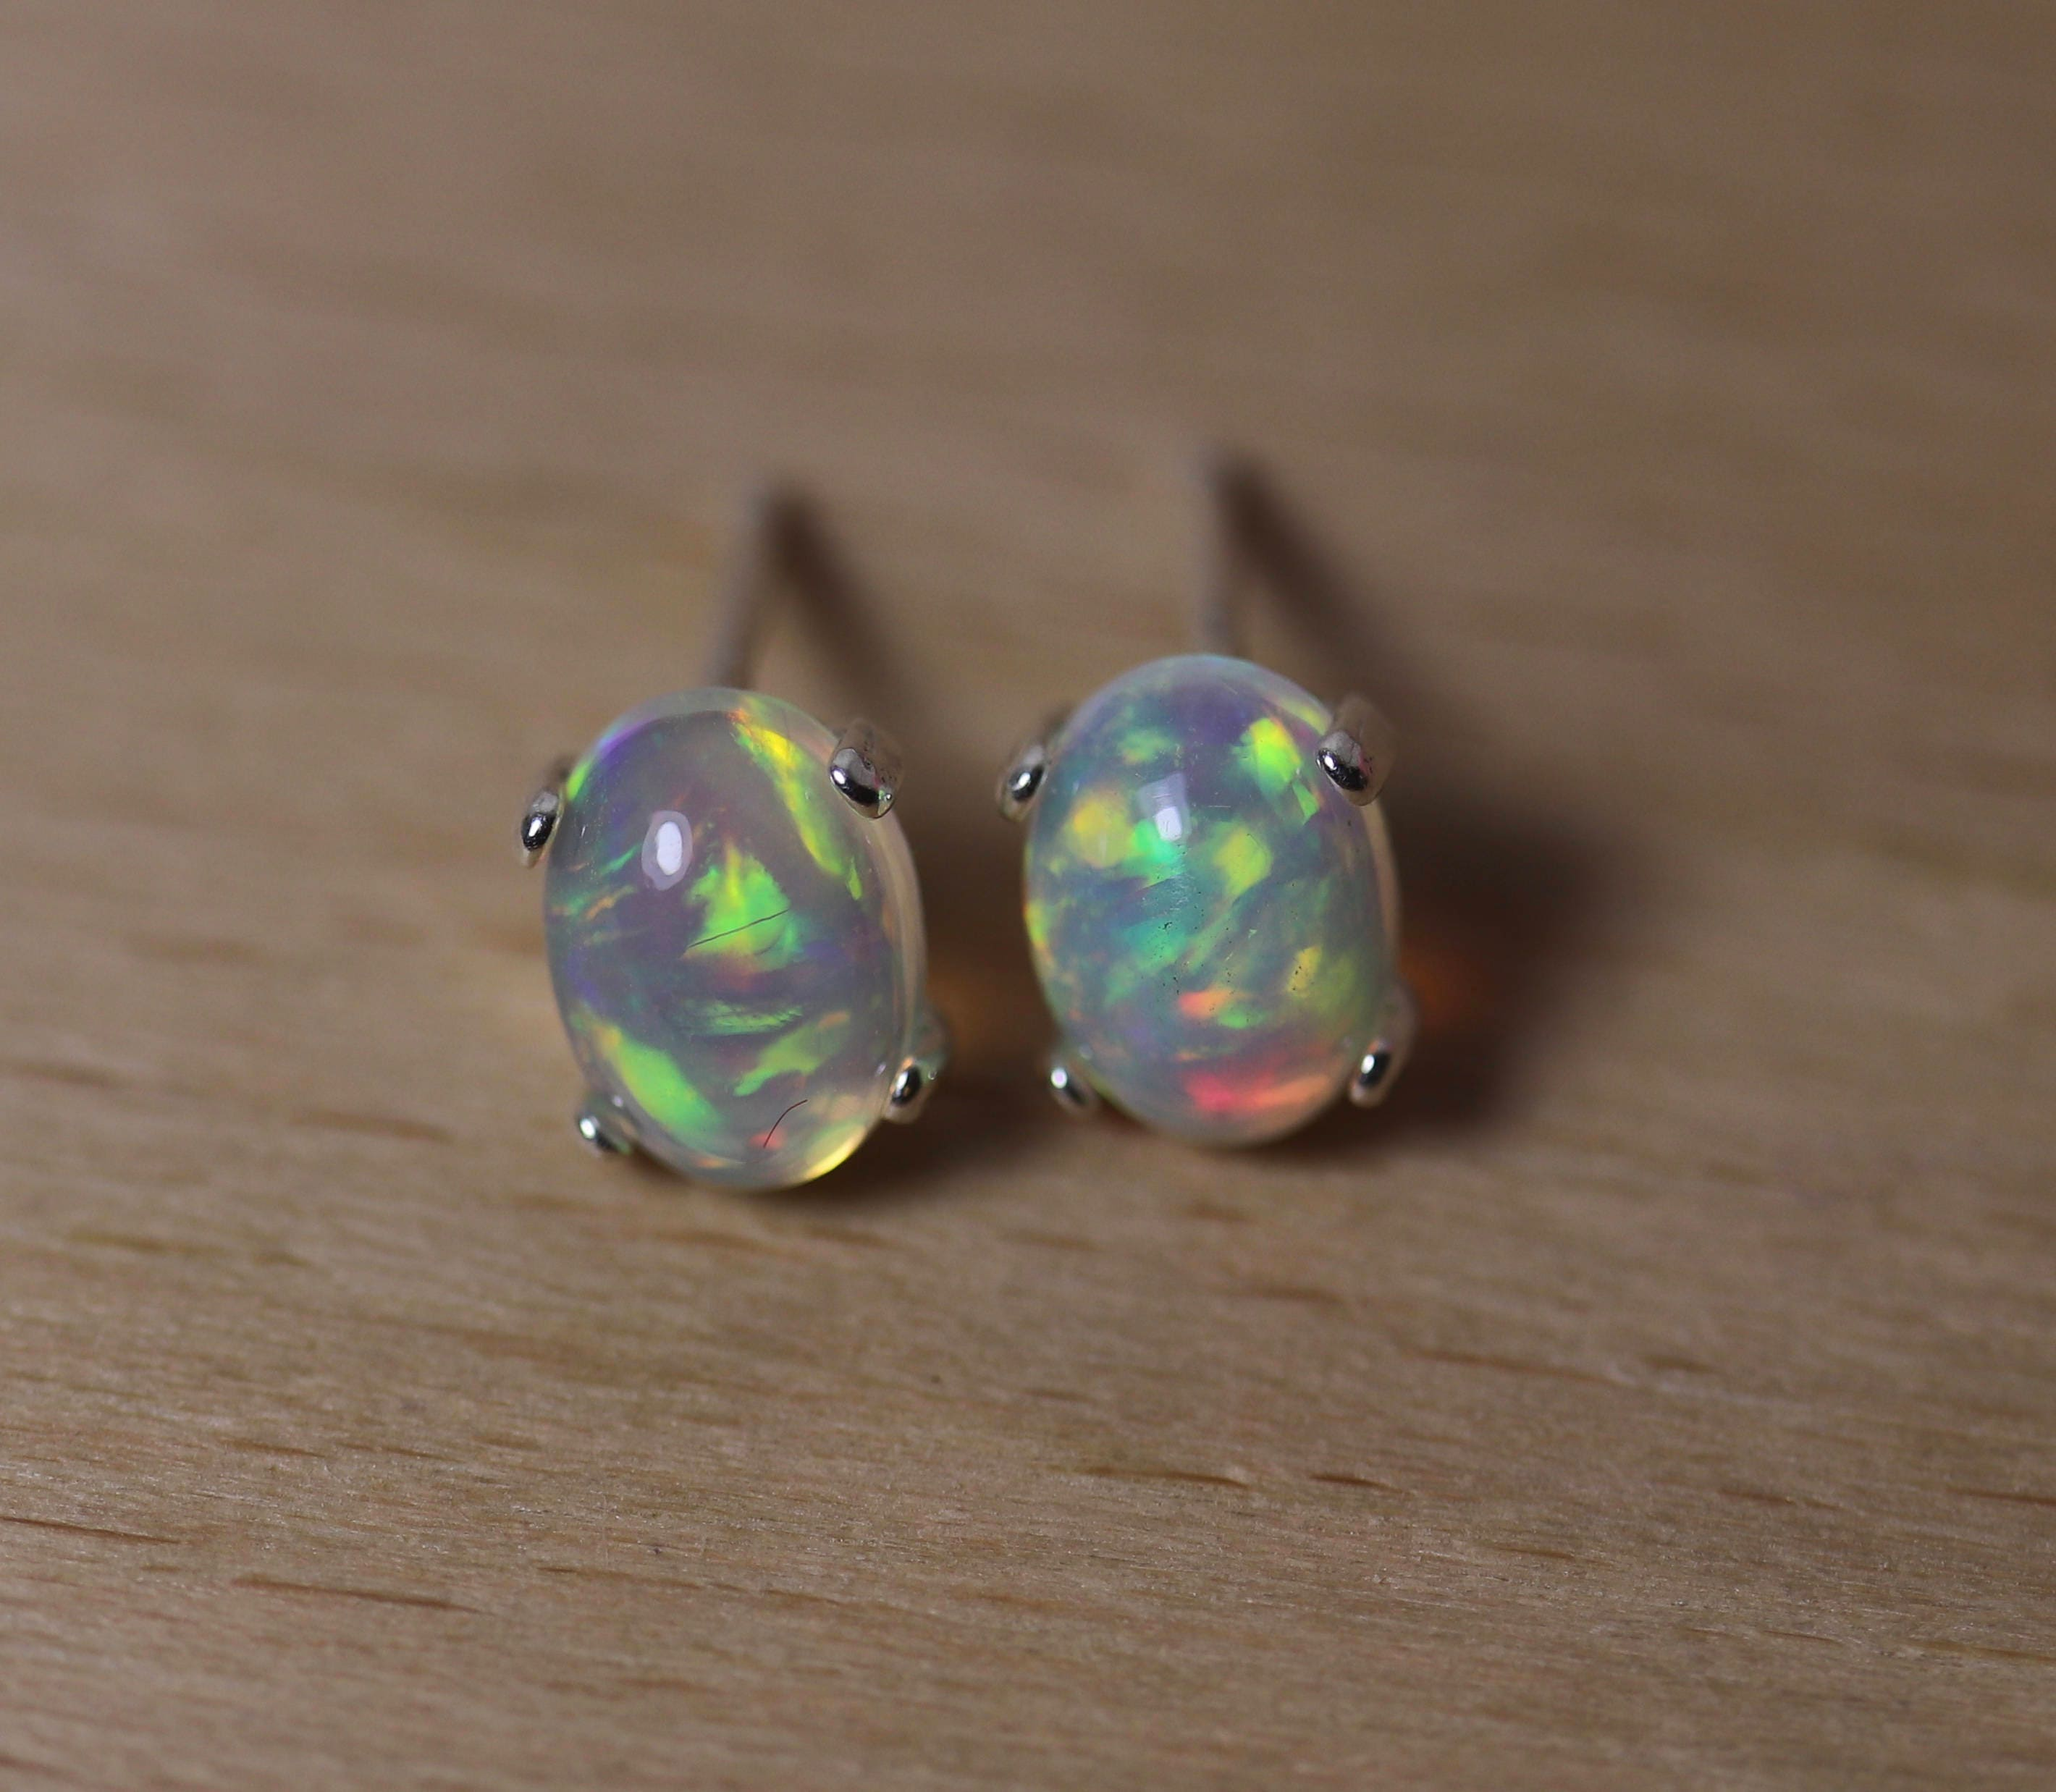 perfect made with pierced stunning hand product body these piercing genuine standard tourmaline ears in butterfly for identity opalz natural are back earrings and about opal size